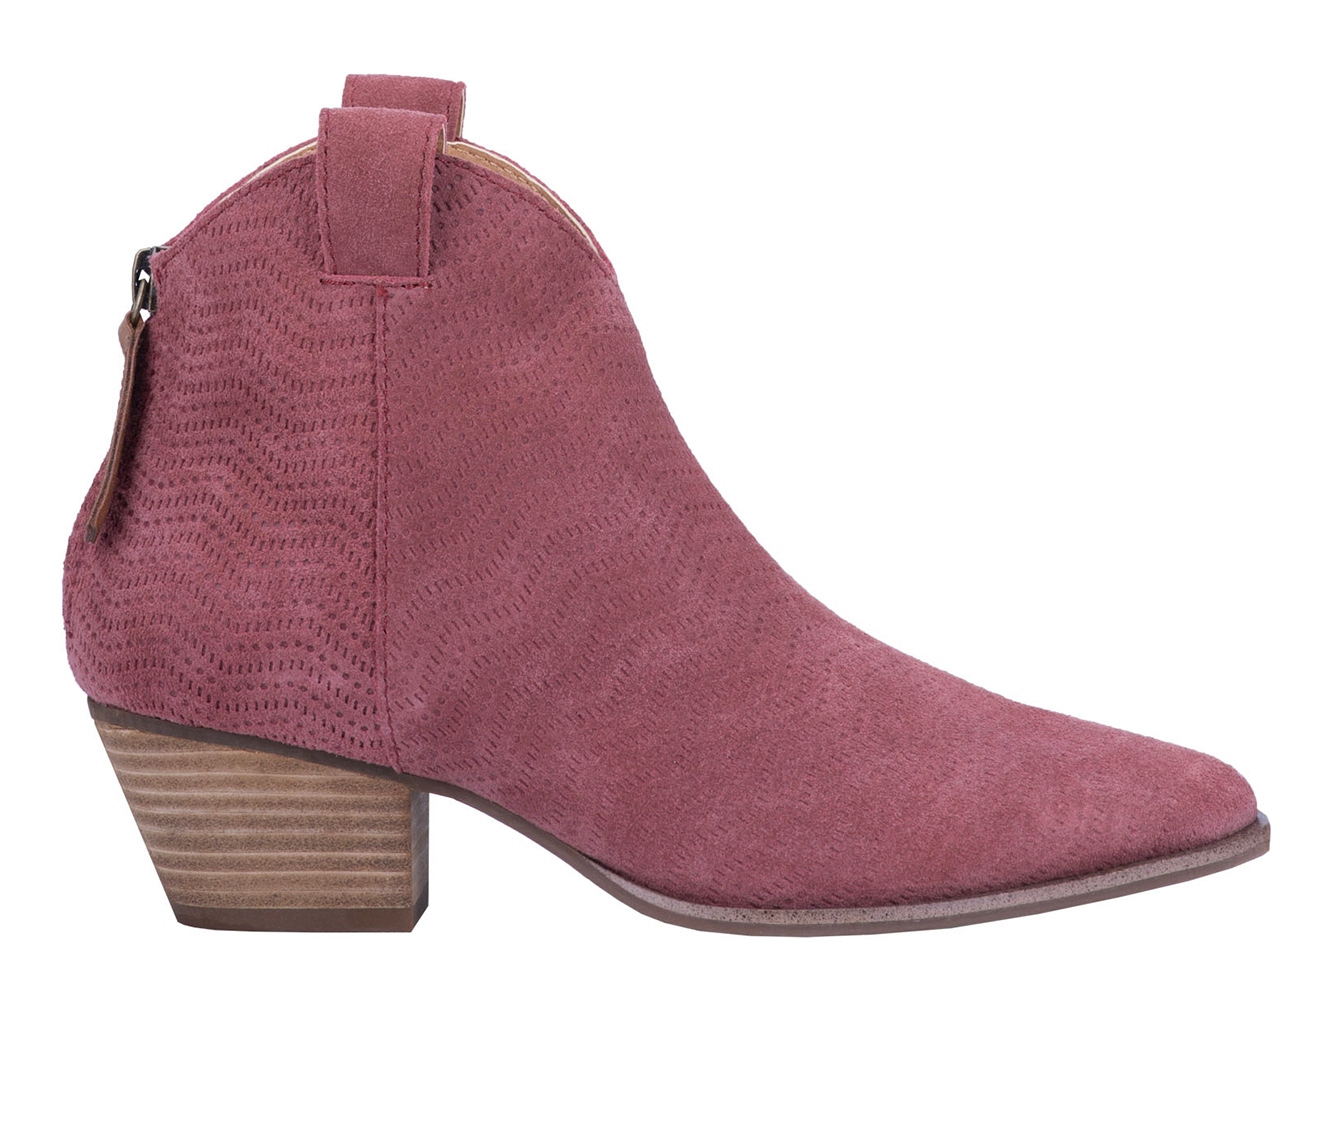 Dingo Boots Kuster Women's Boots (Pink - Leather)